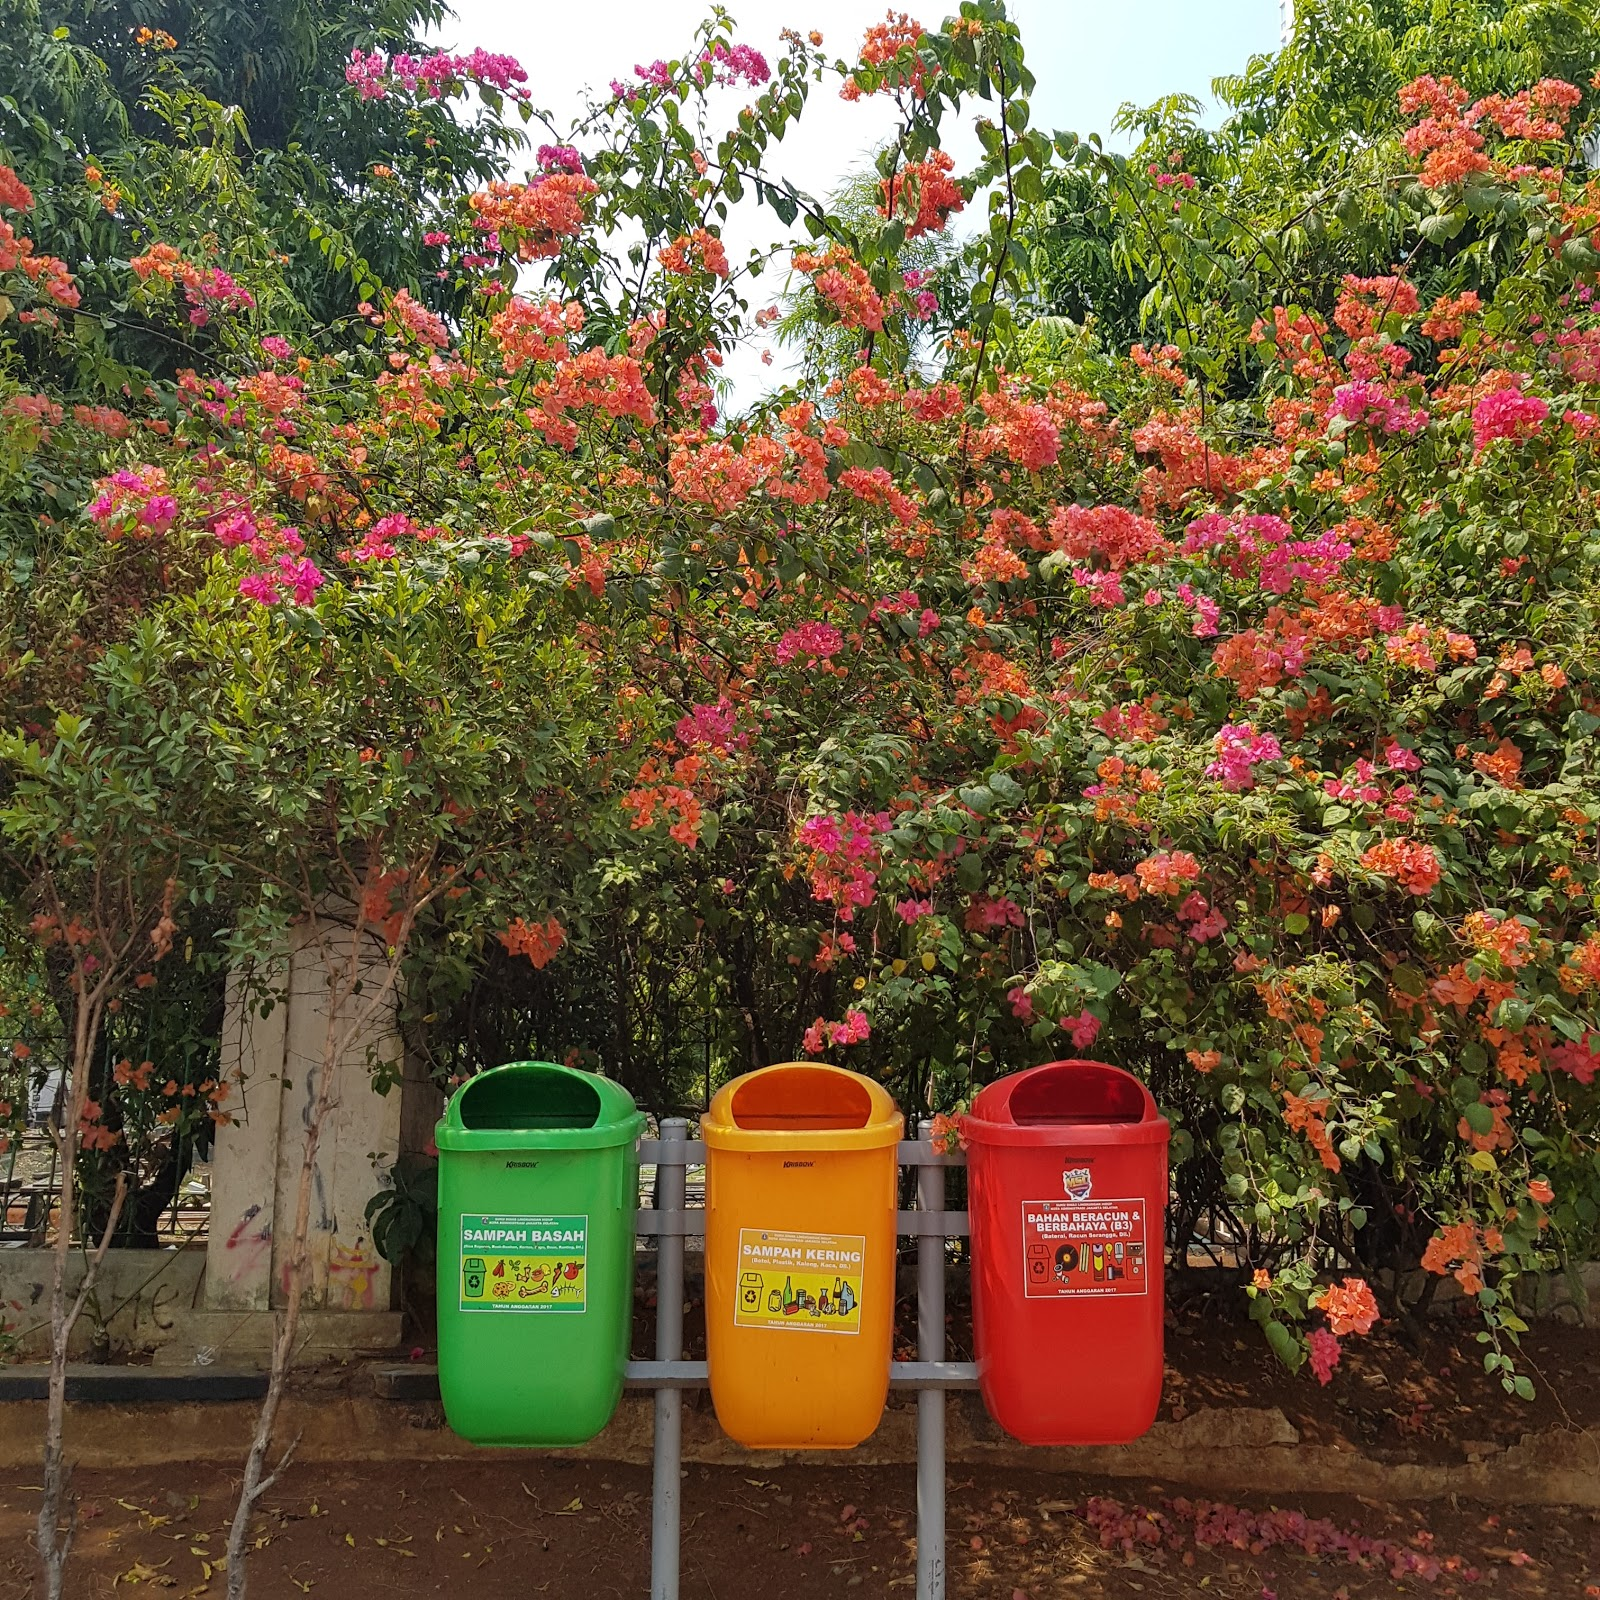 5 Vacation tips for Ecotourism - Recycle